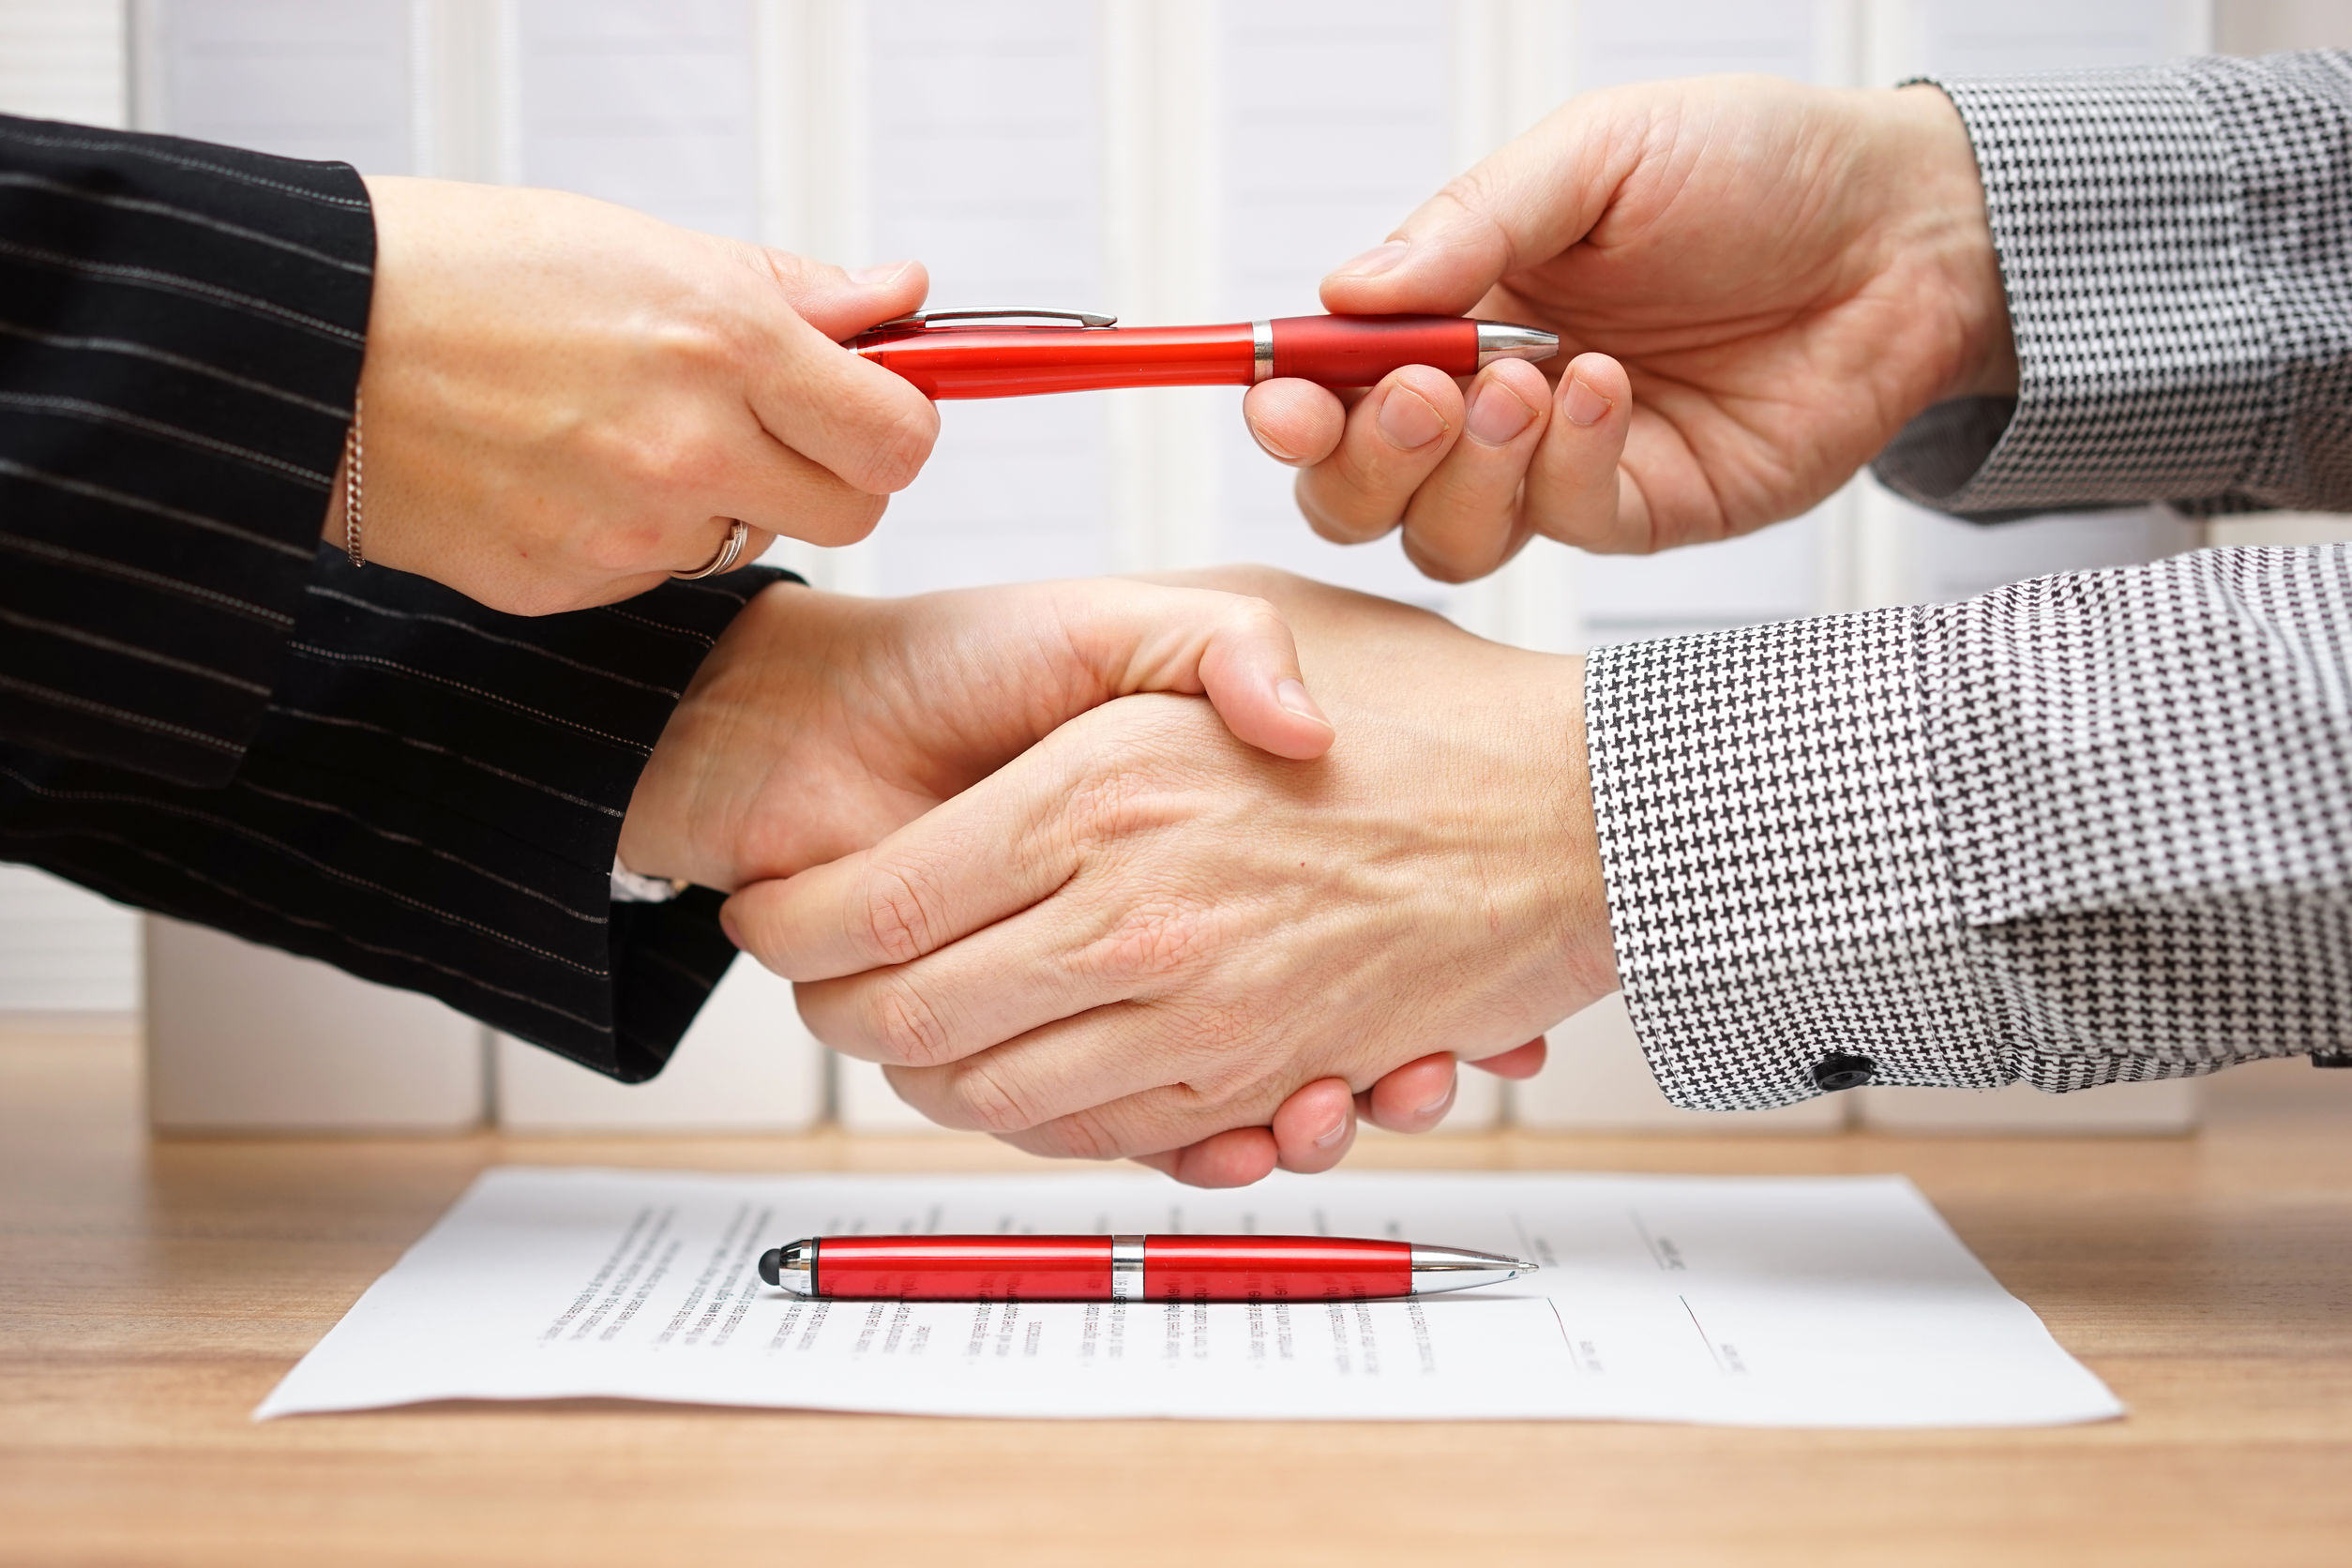 Business partners shaking hands and exchanging pen after finishe